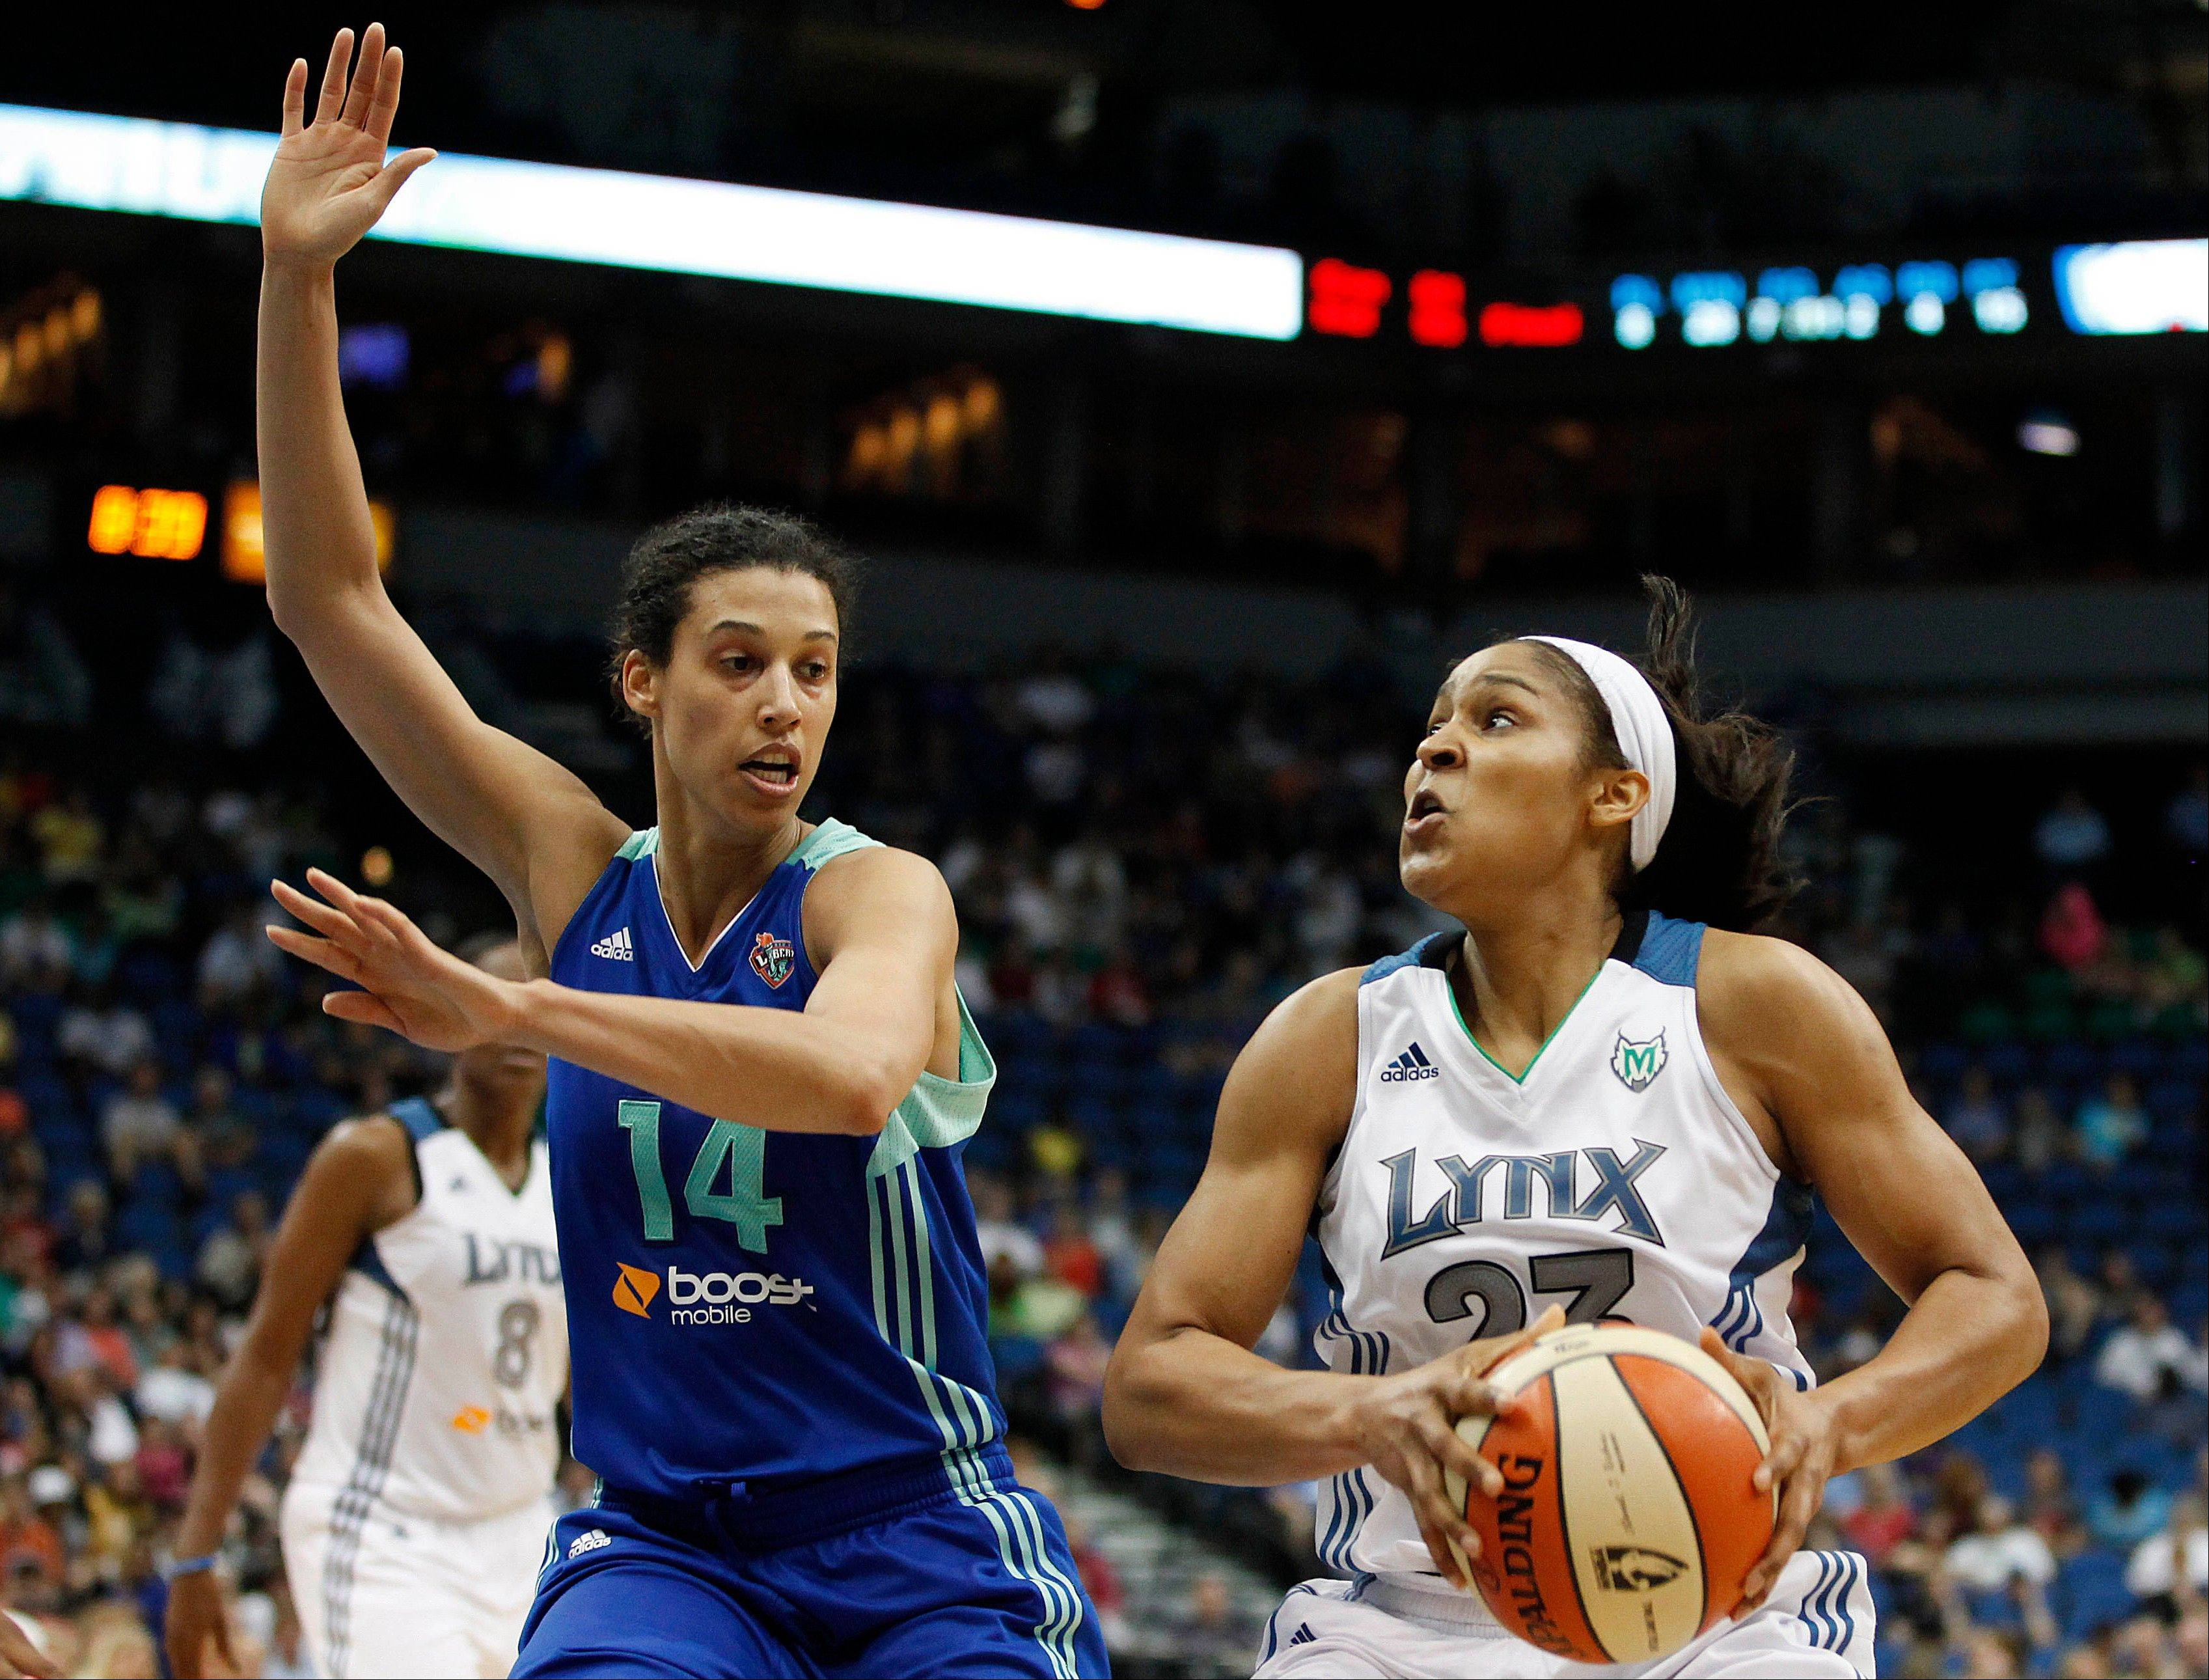 The Chicago Sky travels to Minnesota to take on the 11-1 Lynx and forward Maya Moore (23) in a nationally televised game Saturday. The Sky, however, will be without leading scorer Epiphanny Prince, who will miss 6-8 weeks with a broken right foot.